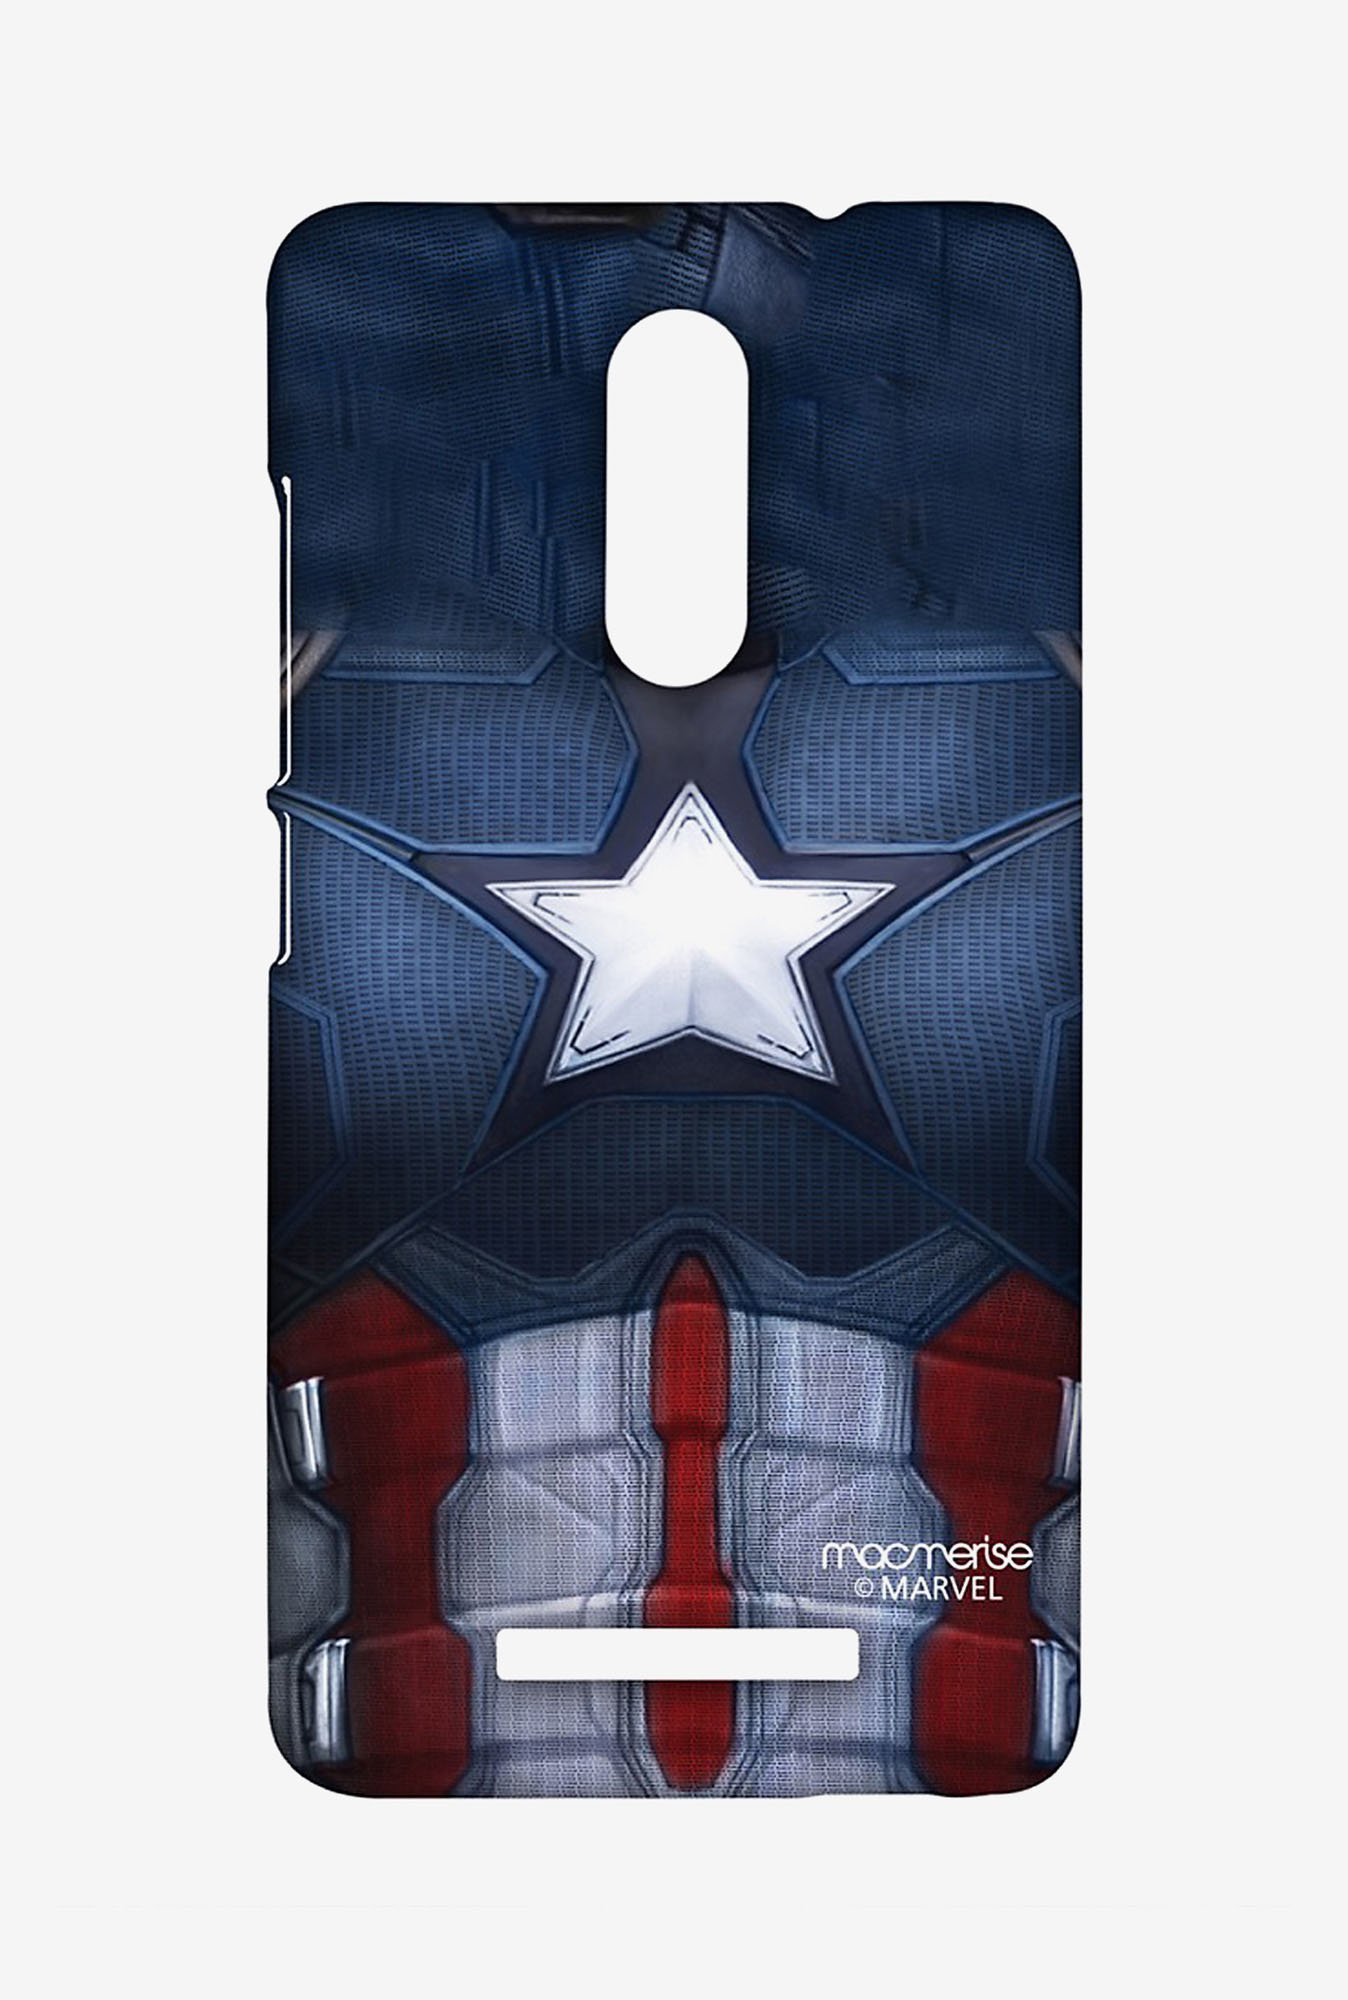 Macmerise XACN3SMM0512 Suit up Captain Sublime Case for Xiaomi Redmi Note 3